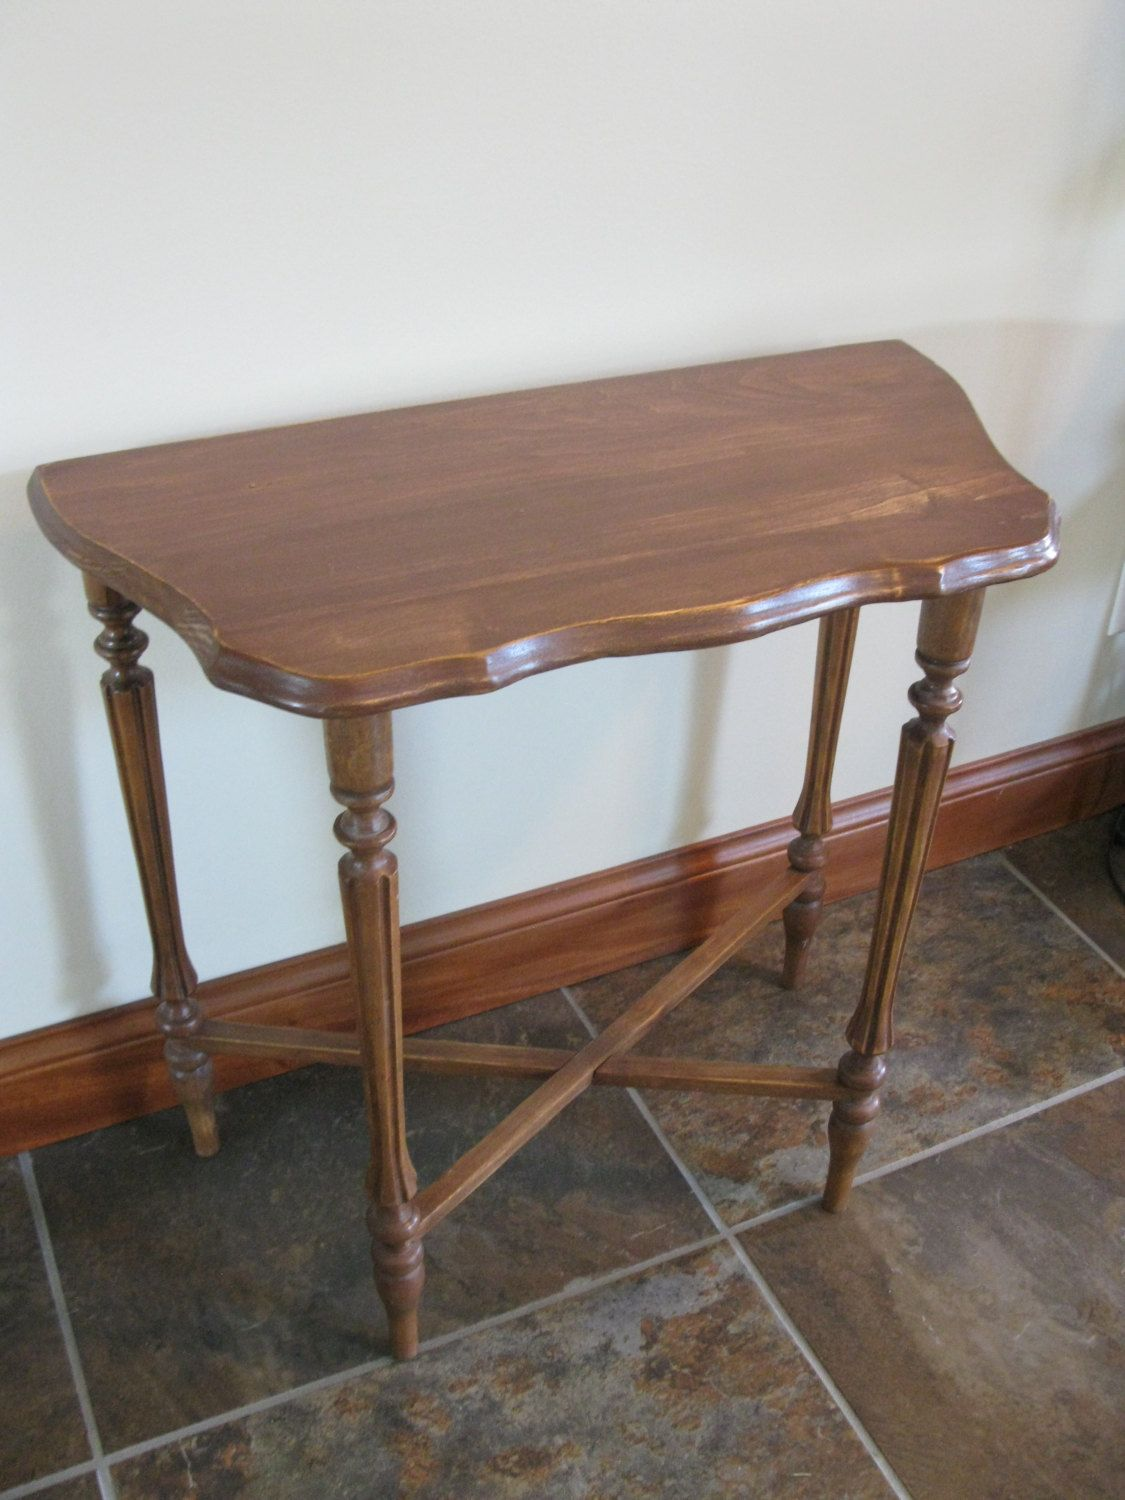 Vintage Half Moon Side Table Accent Table Small Wood Table